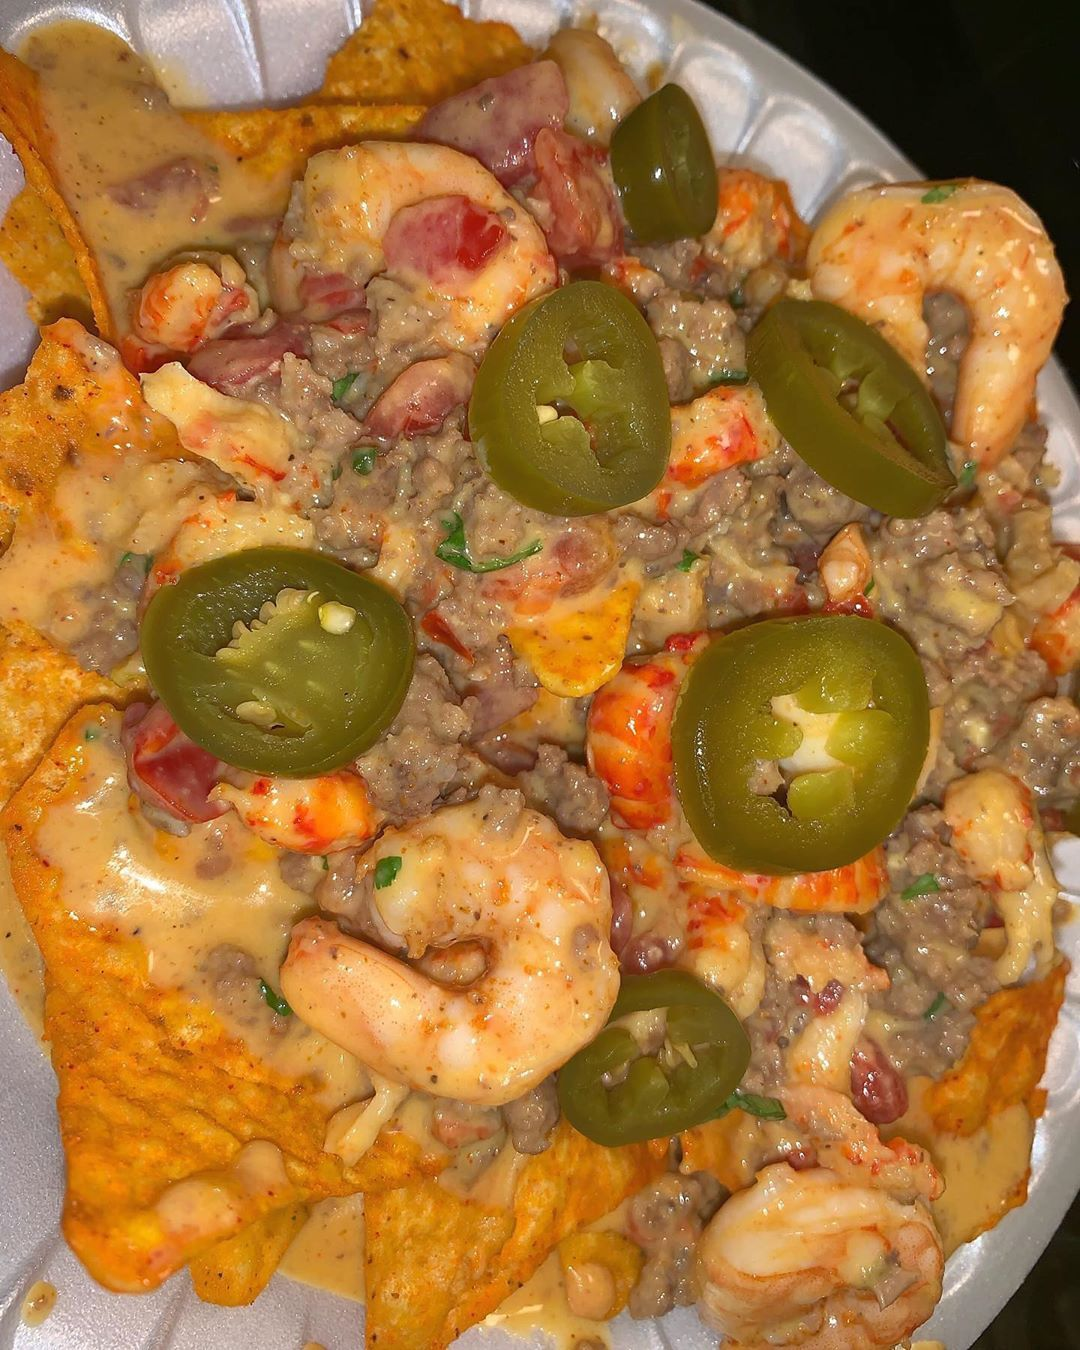 Seafood Nachos 10 16oz Nacho Cheese Sauce W Beef Shrimp And Crawfish Comes With Doritos 1 More To Add A D Seafood Nachos Food Dishes Shrimp Nachos Recipe